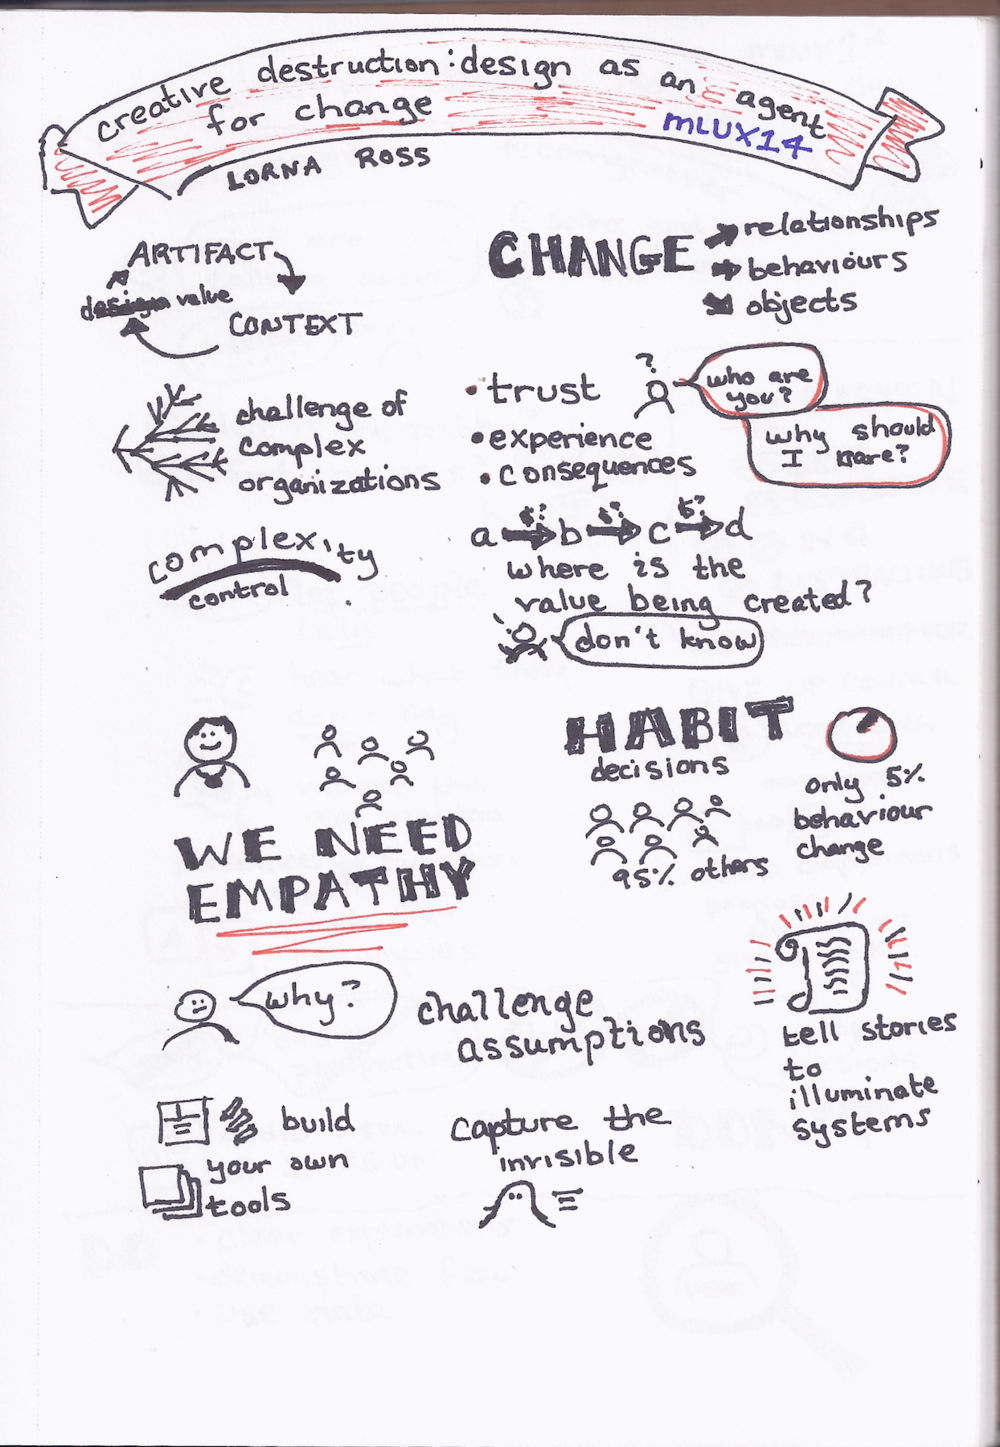 Creative Destruction - Design as an Agent for Change (Lorna Ross).png